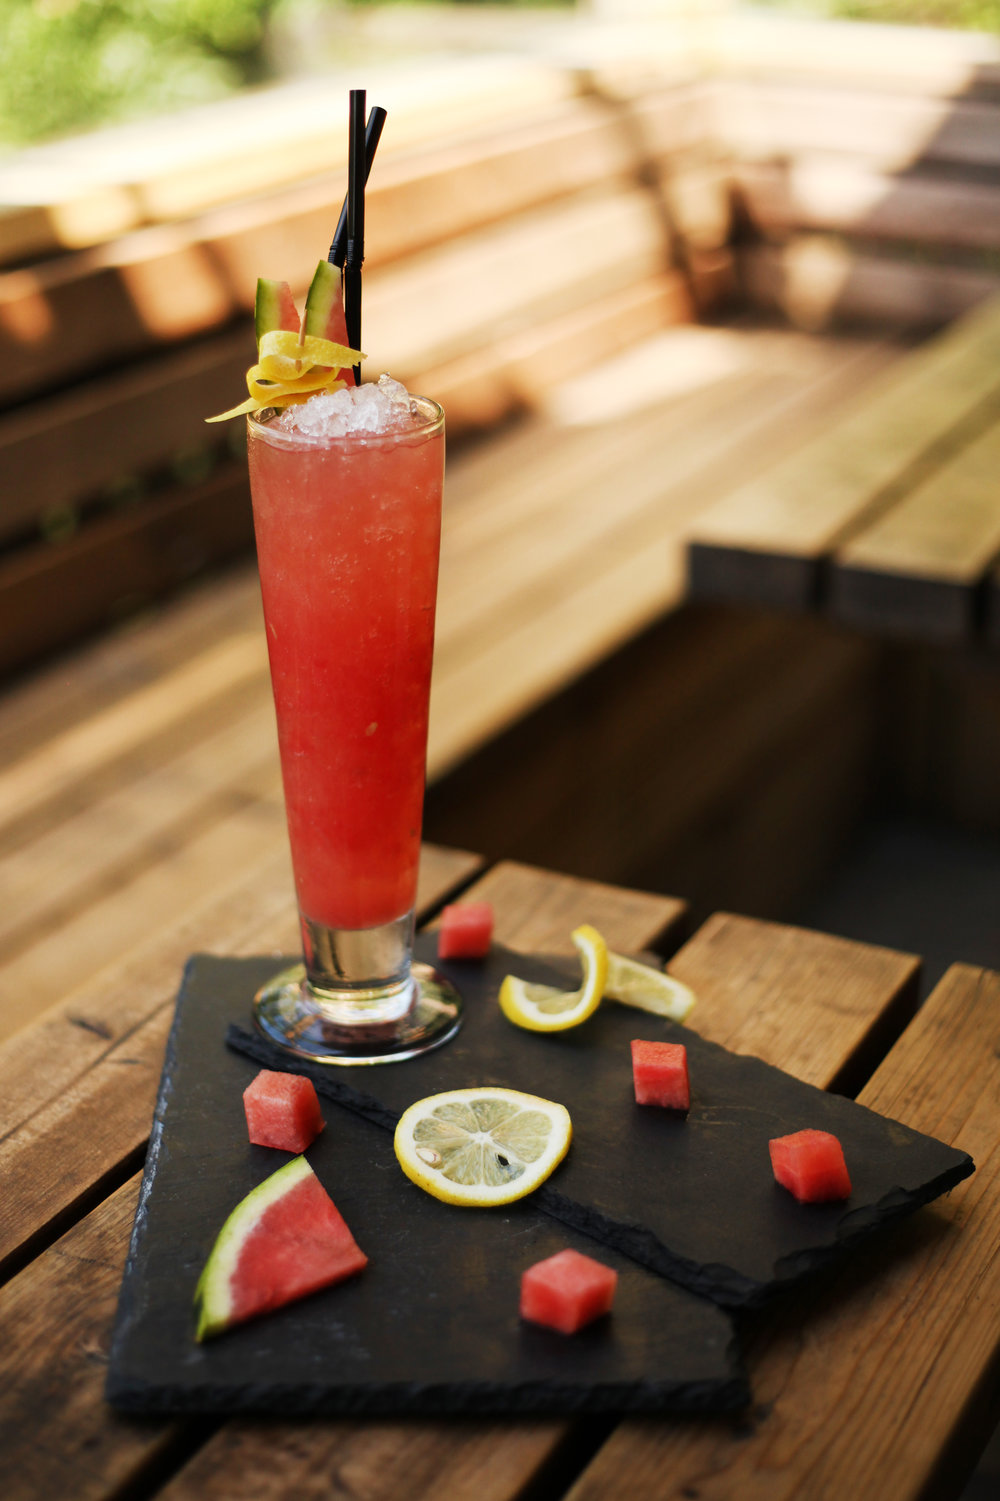 The Lighthouse in Oxford serves a variety of cocktails. Classics like the Mojito or Old Fashioned, martini mixes such as the Cosmopolitan or Madrid Sour and much more. If there's a particular cocktail you like, please do enquire with one of our bartenders, we just may be able to help.